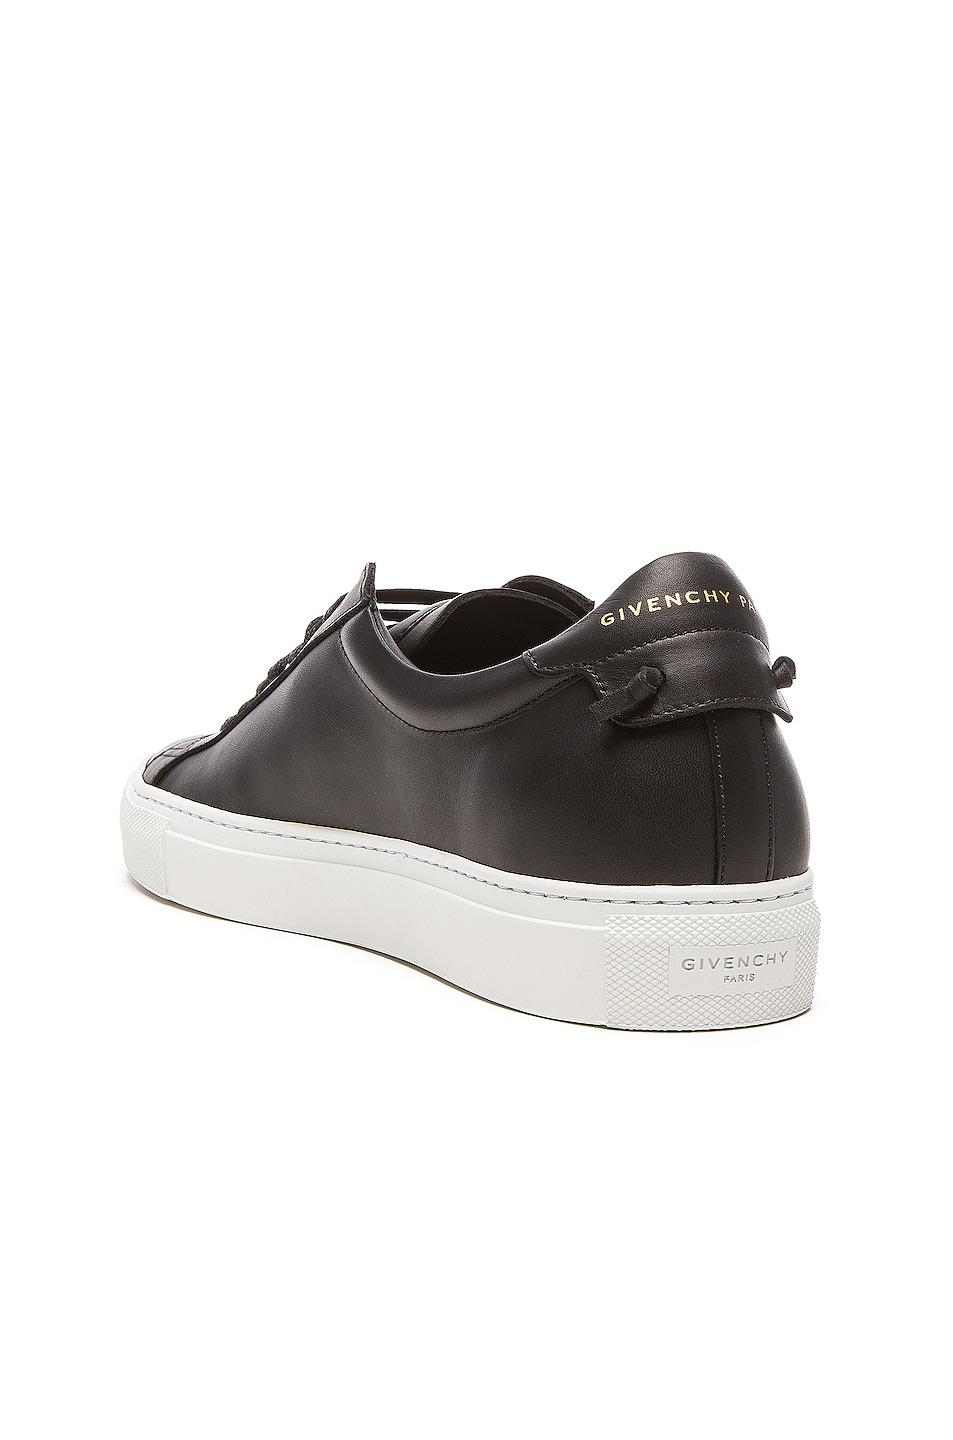 Leather low top sneakers with knot detail Givenchy GUK6EgpeTP